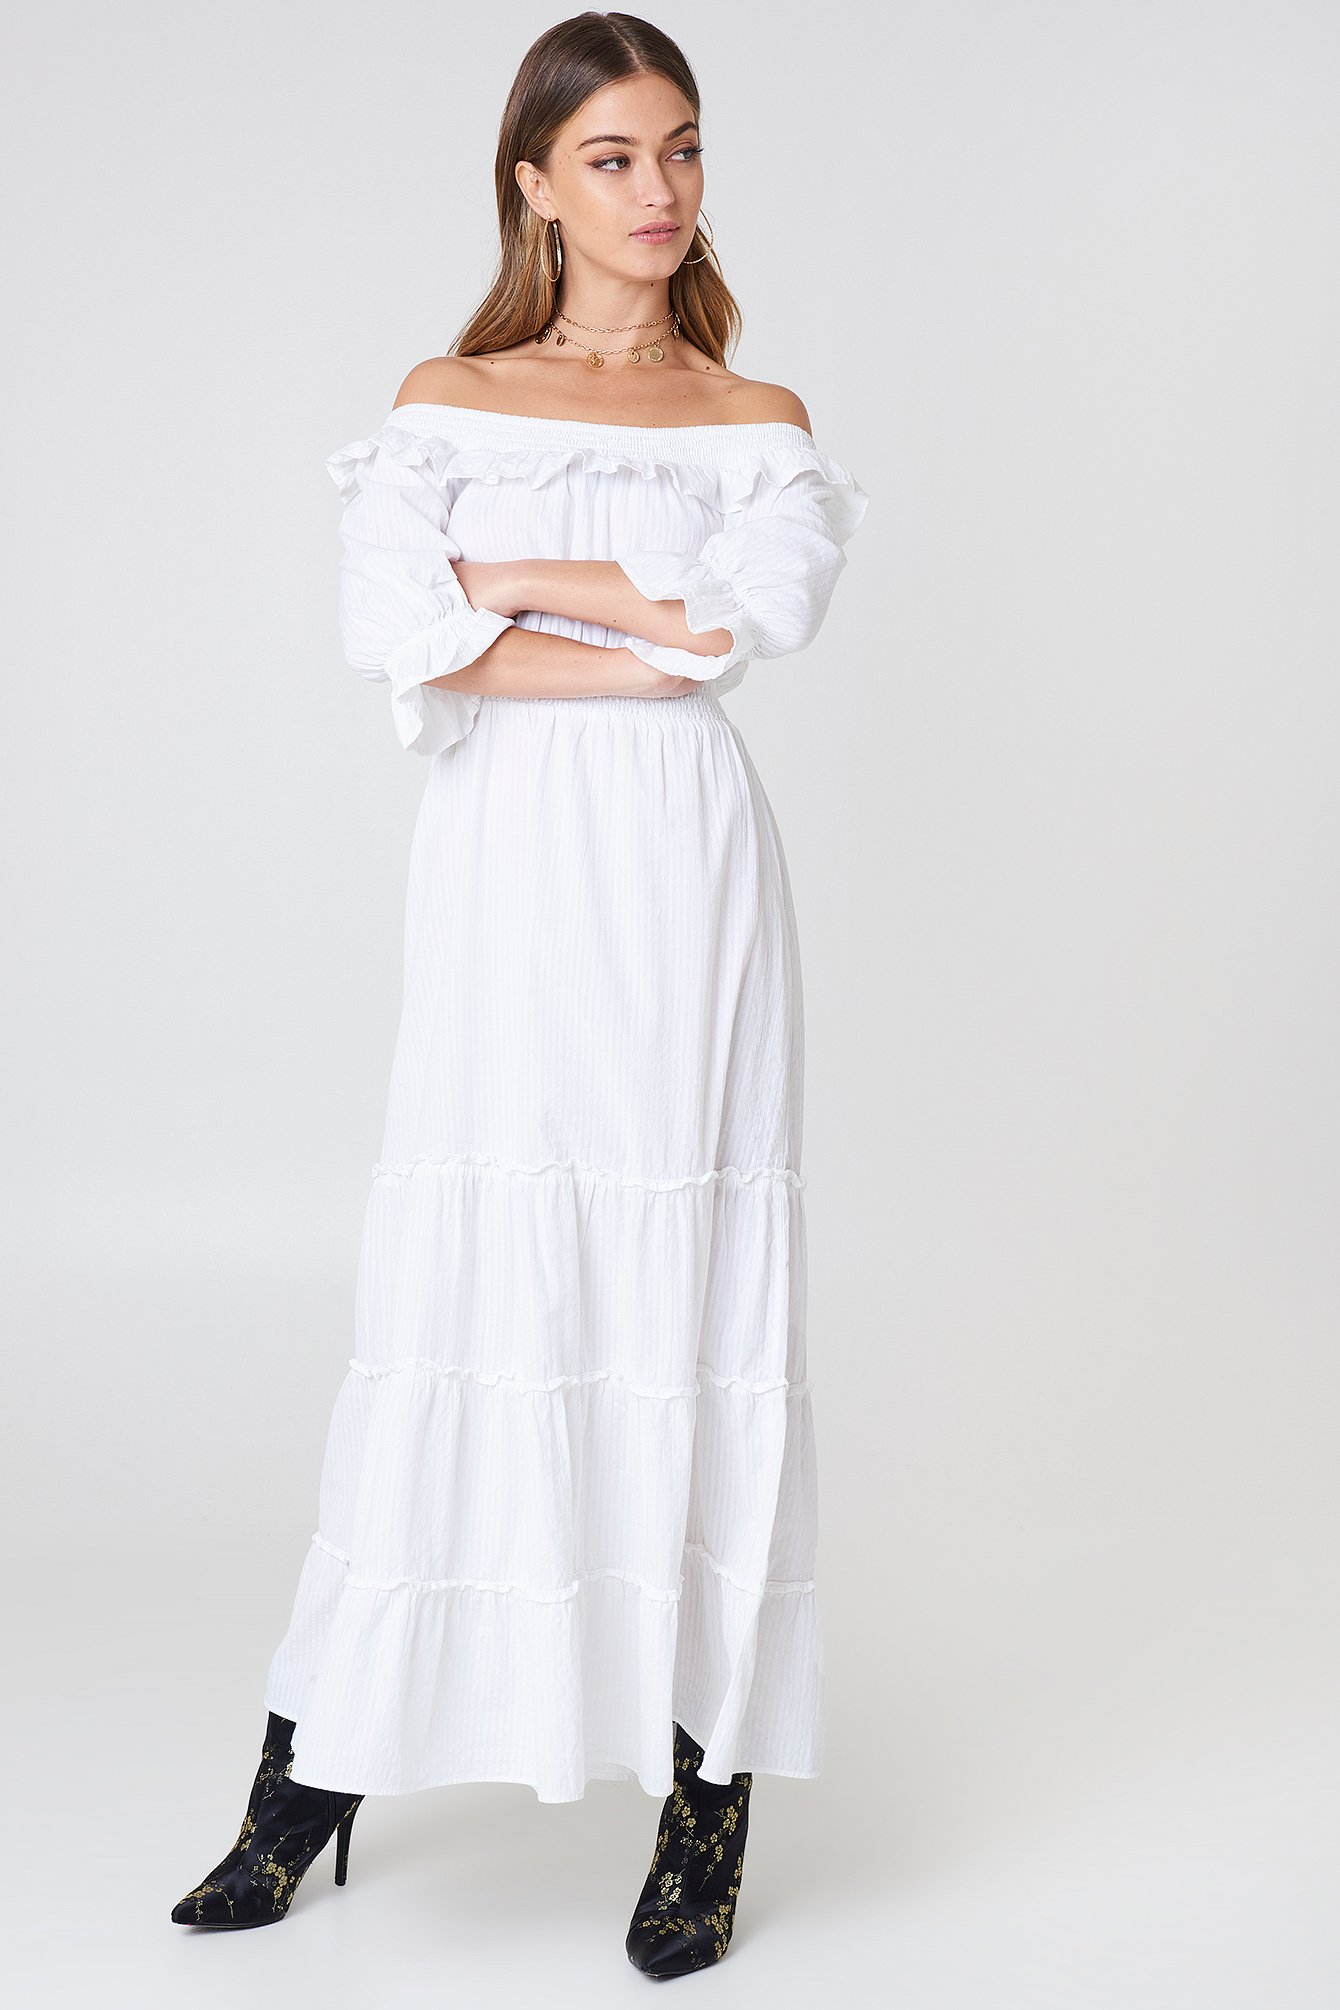 White Off Shoulder Ankle Dress